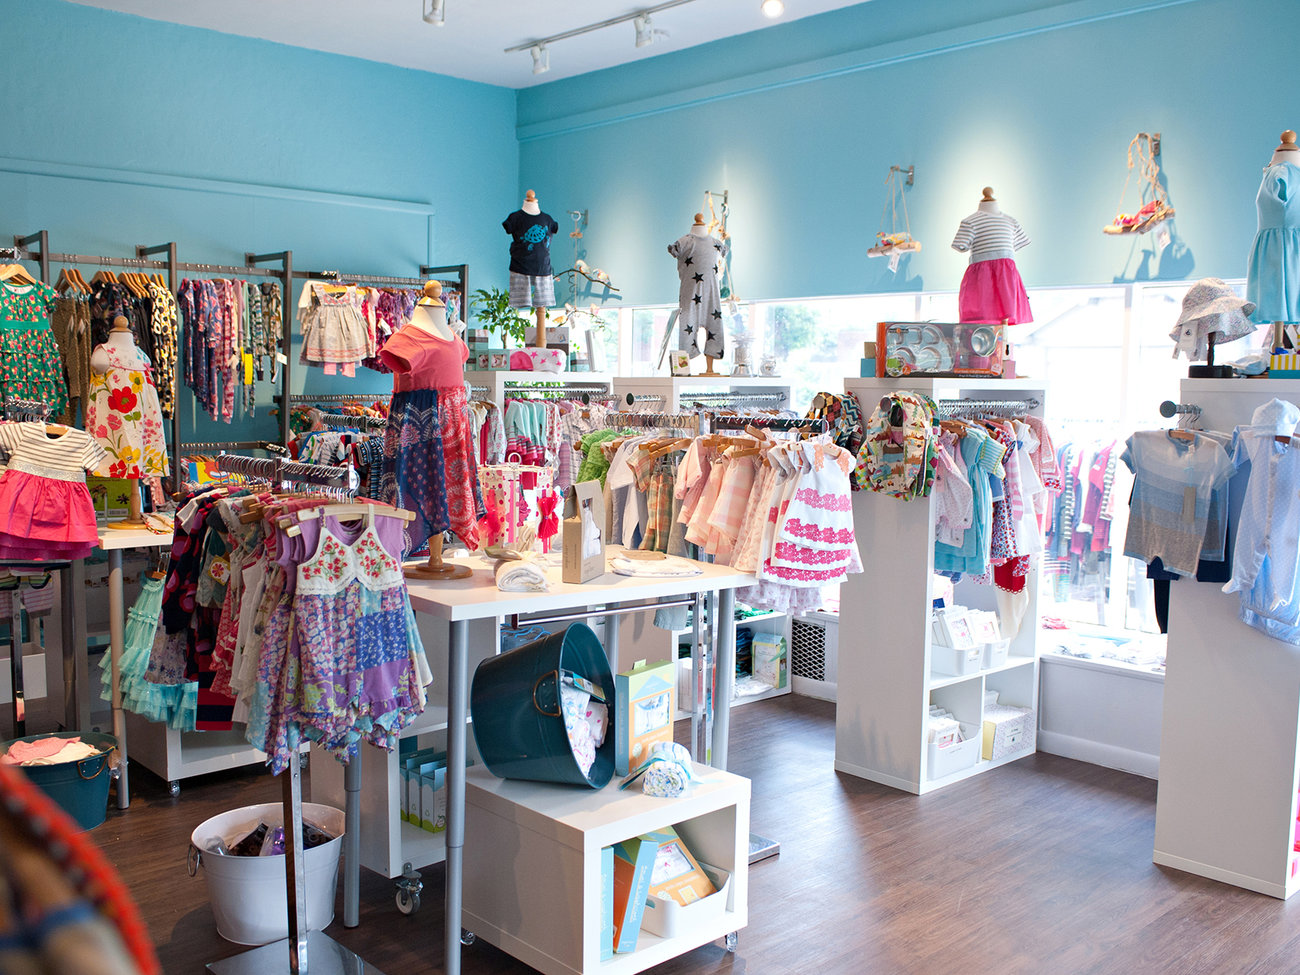 Nest Children's Boutique Store in Denver